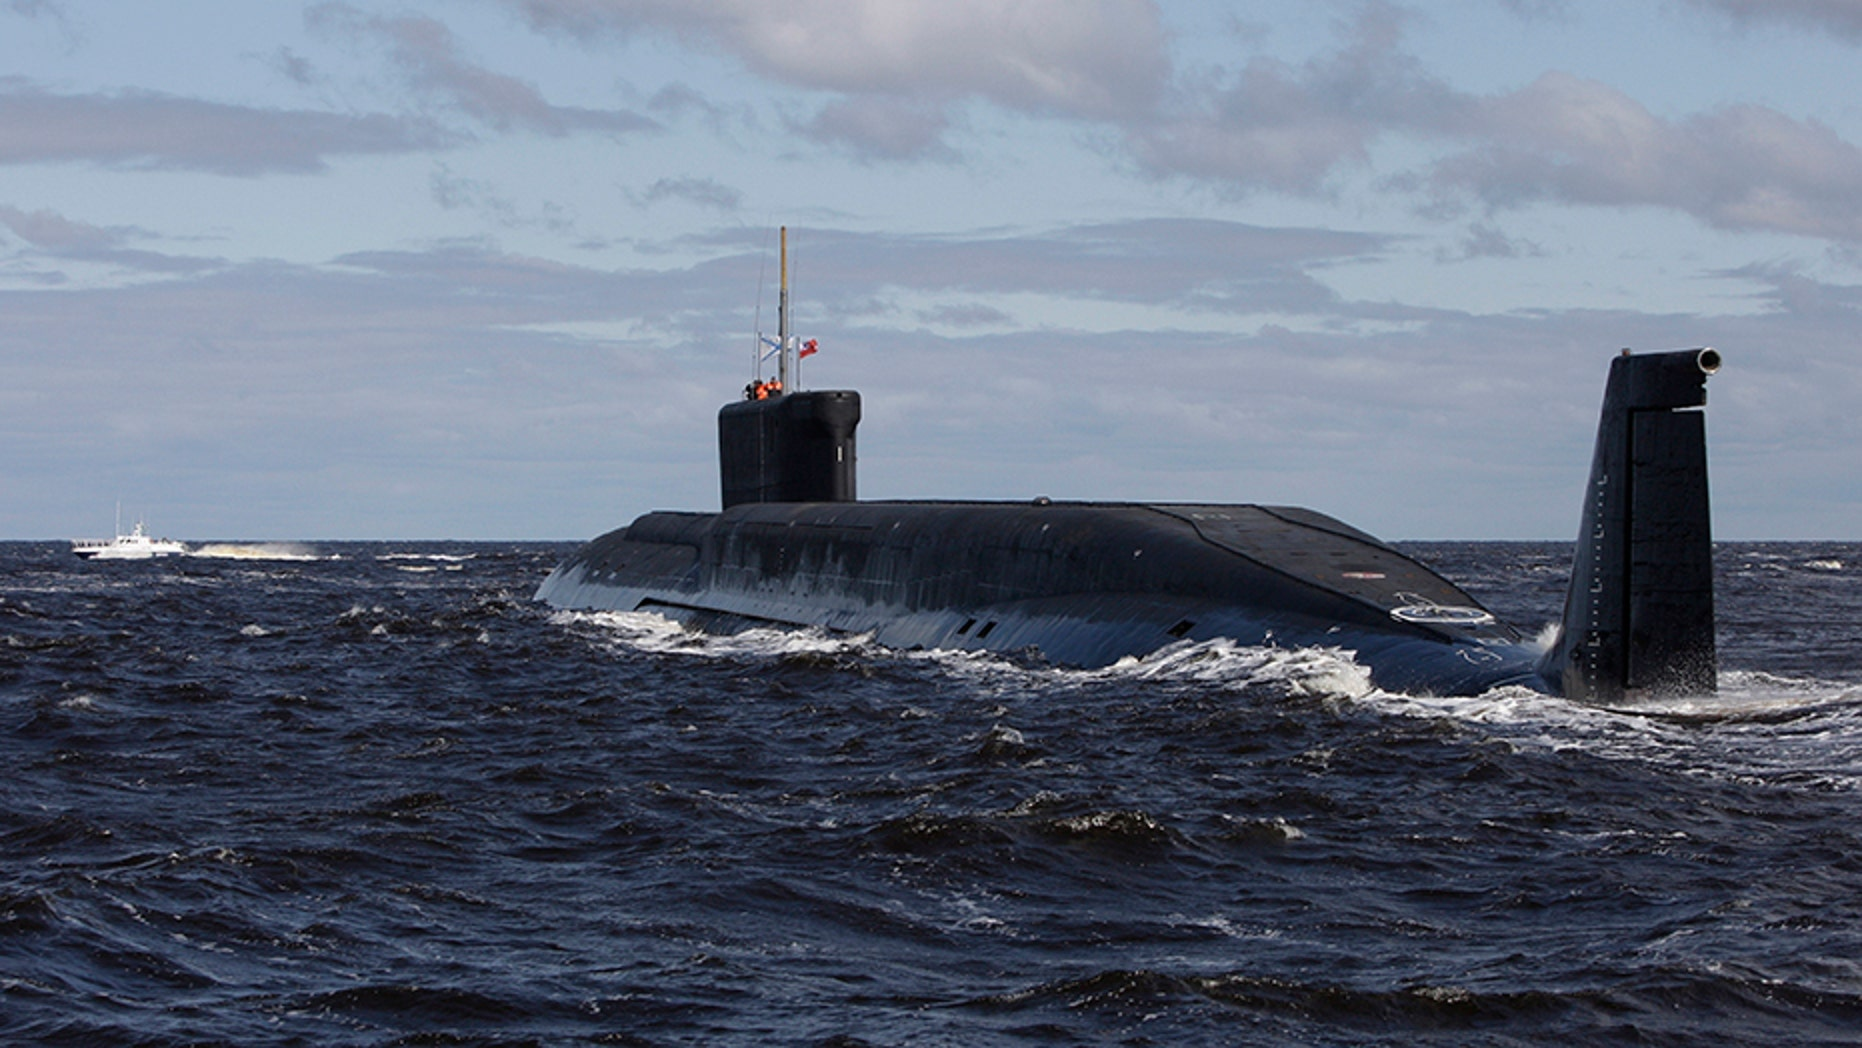 In this file photo taken on Thursday, July 2, 2009, the Russian nuclear submarine, Yuri Dolgoruky, is seen during sea trials near Arkhangelsk, Russia.